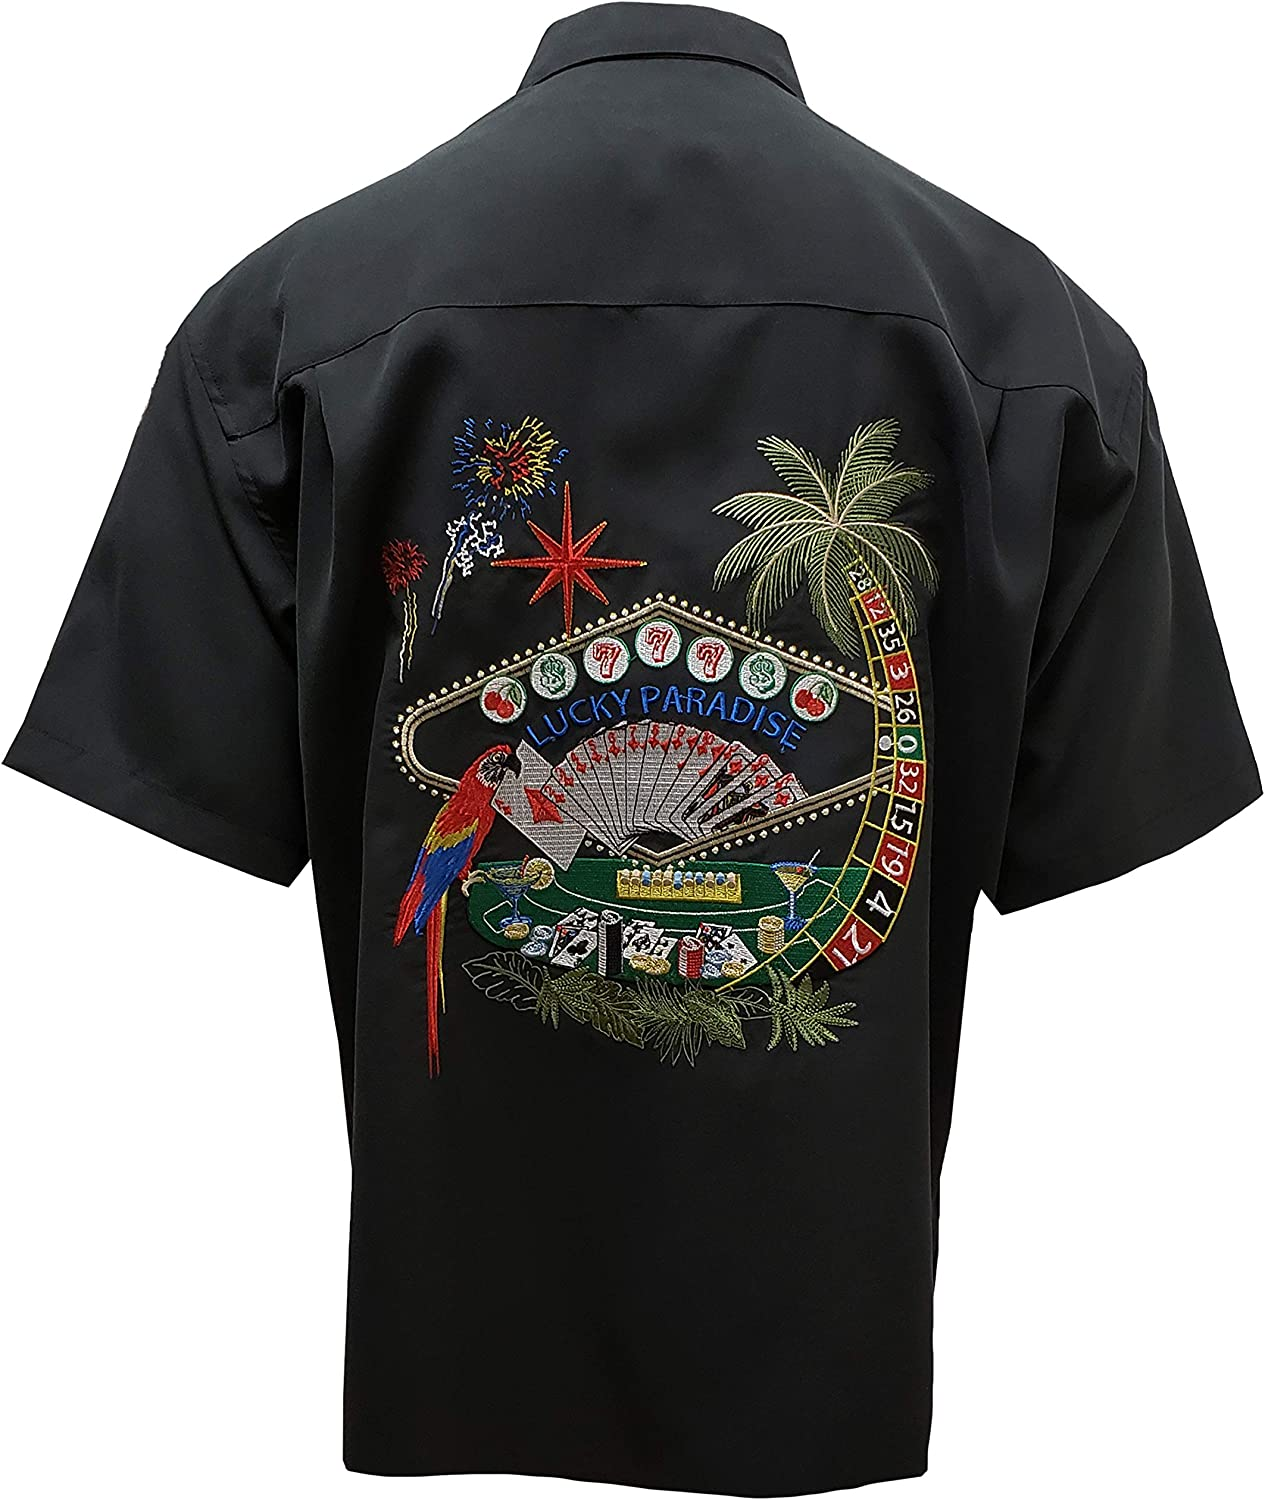 Bamboo Cay Men's Lucky Paradise Butt Casual Hawaiian Embroidered Clearance SALE! Limited time! Surprise price